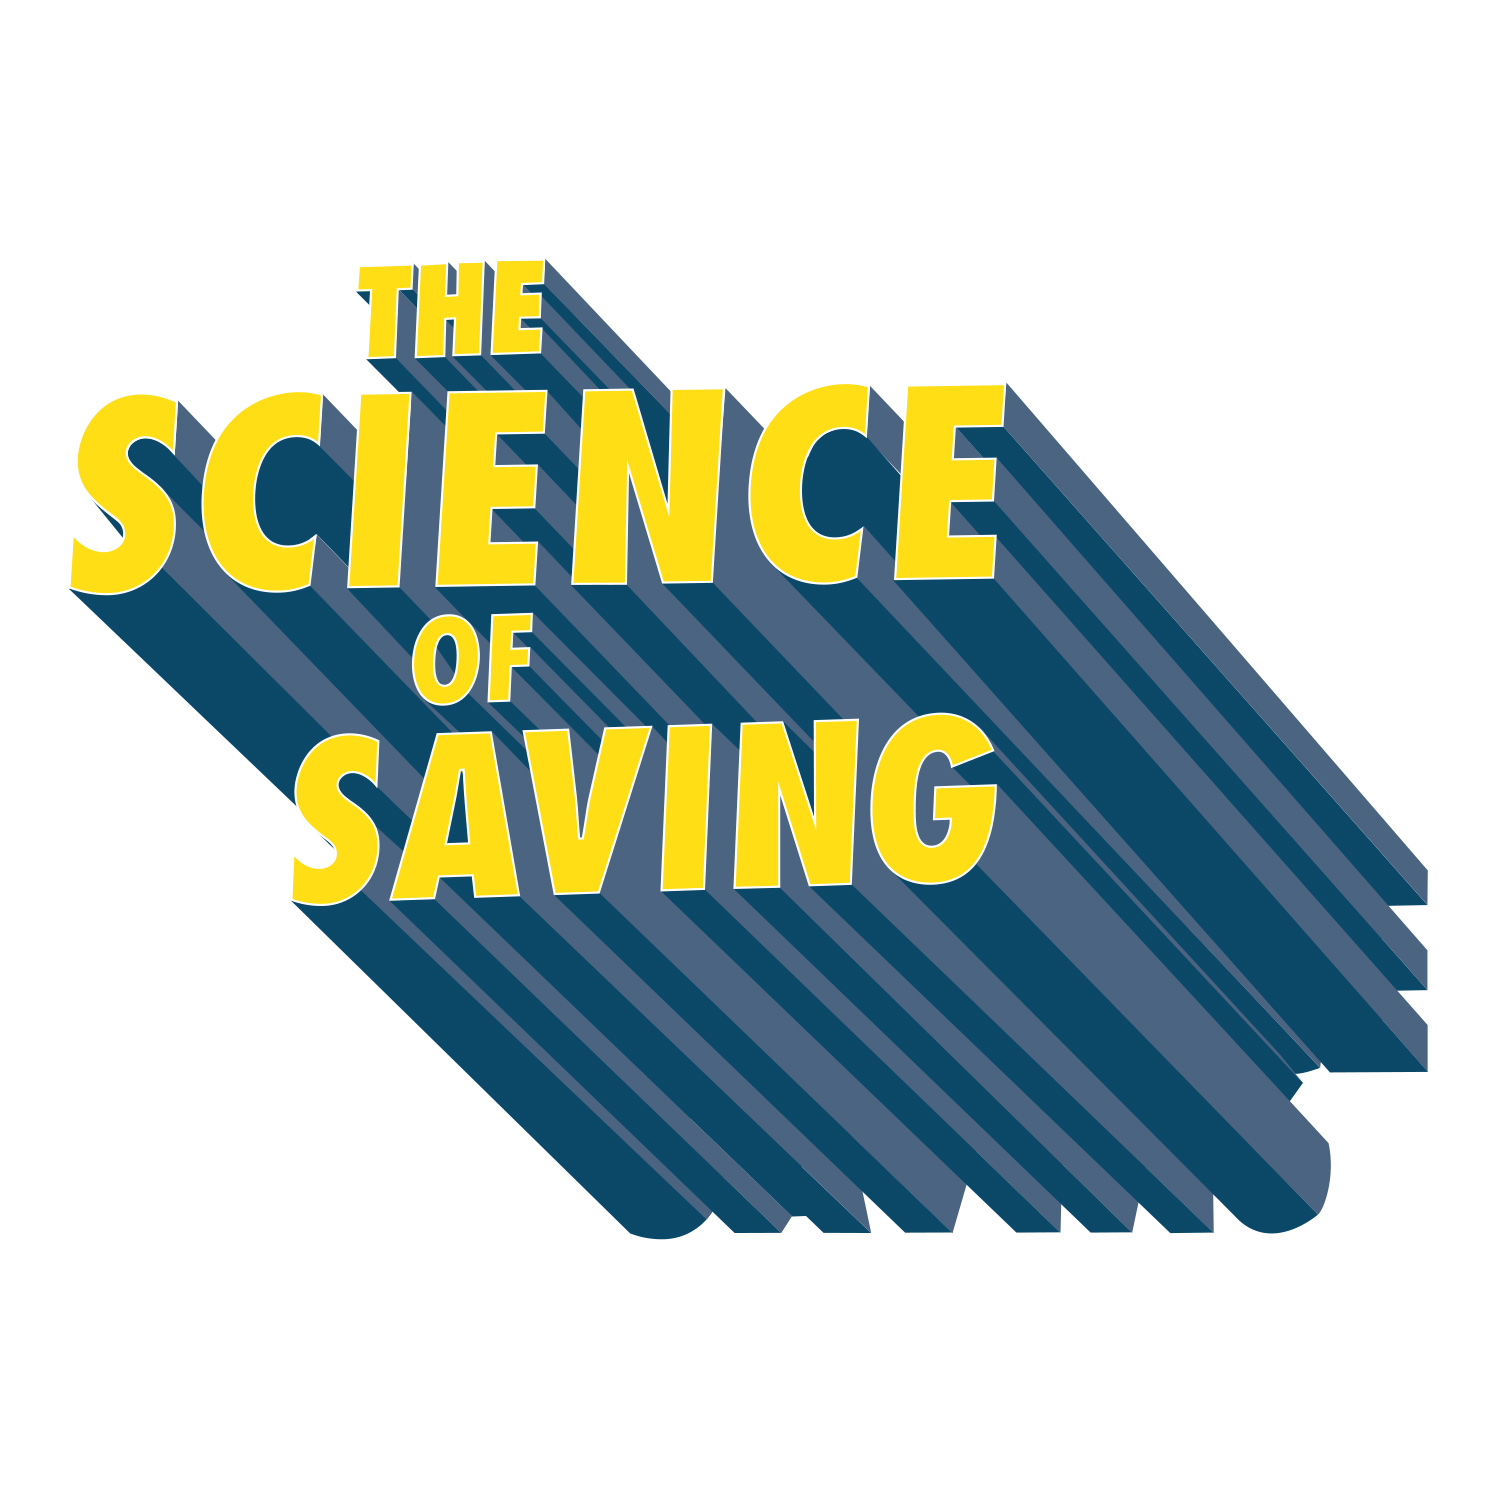 The Science of Saving